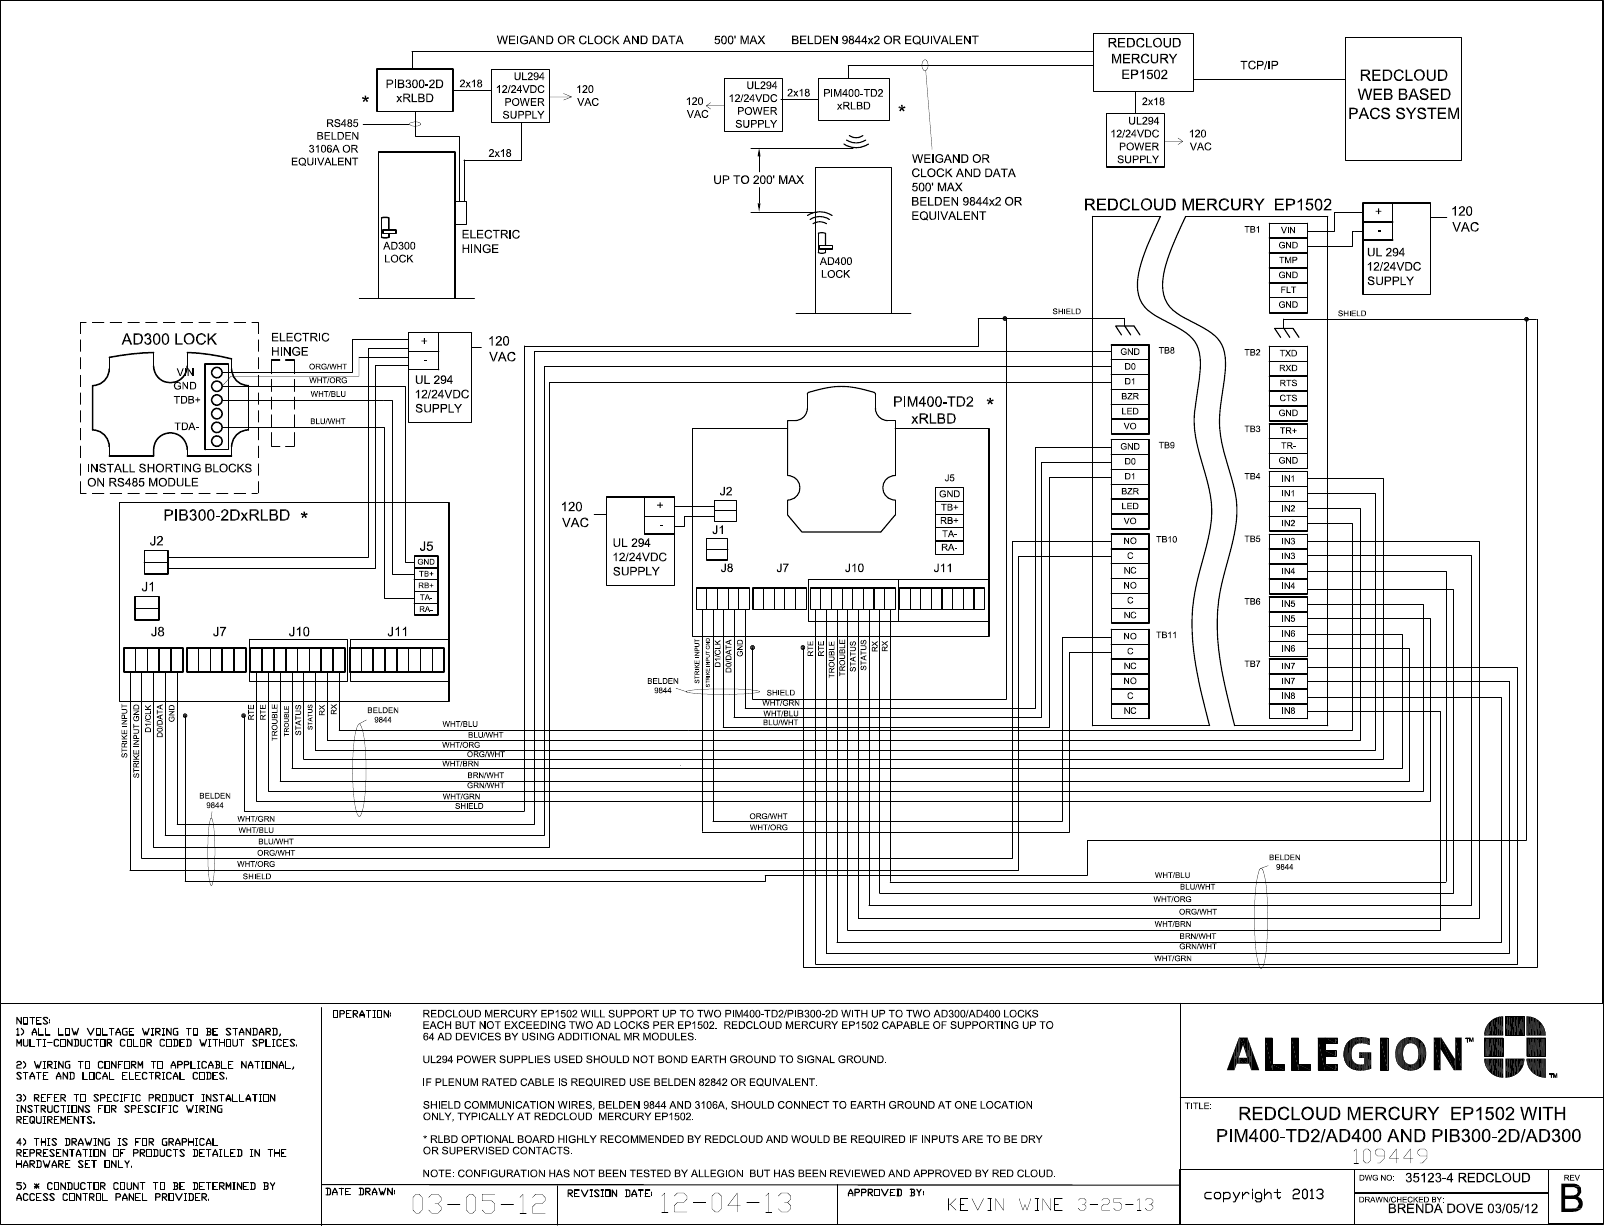 Schlage Electronics C Ad300 Ad400 Wiring Diagram Red Cloud Ep1502 Wiegand 109449